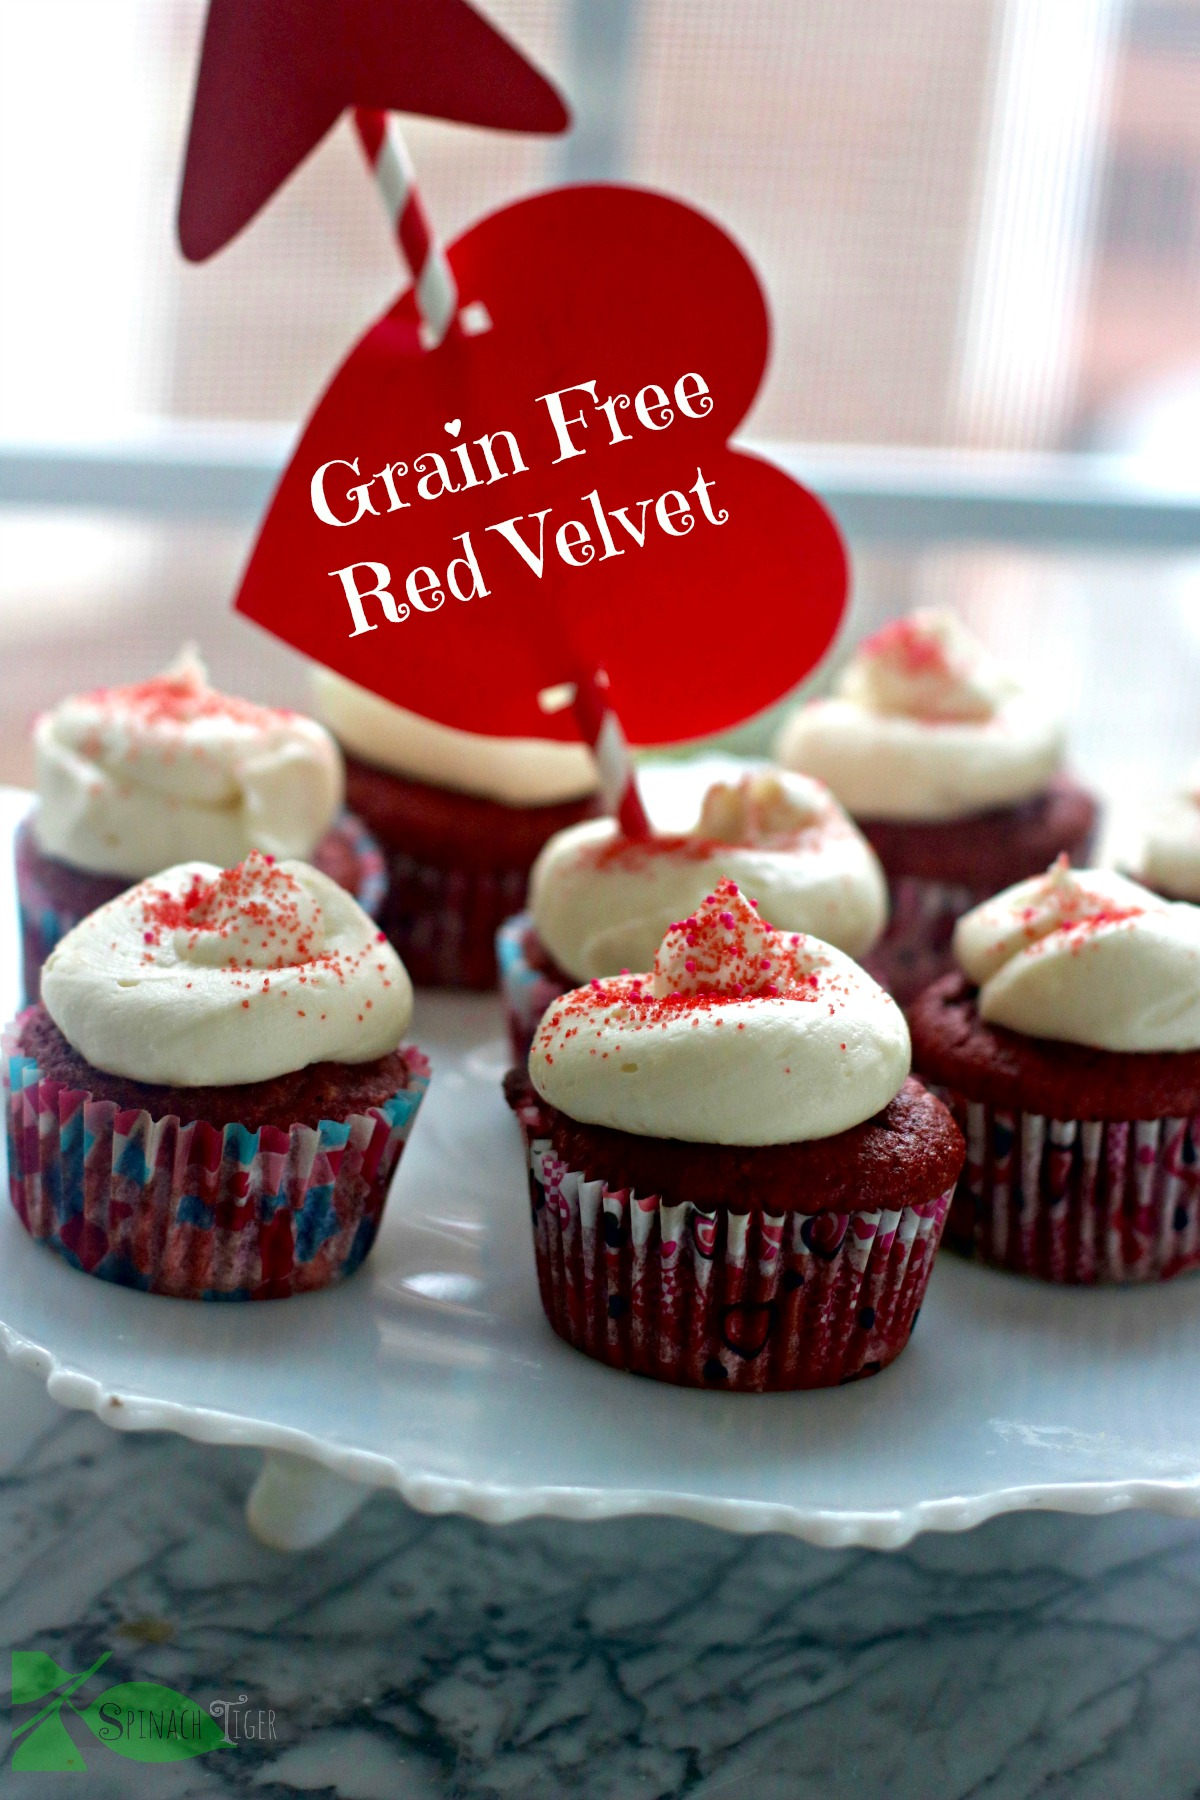 Grain Free Sugar Red Velvet Cupcakes From Spinach Tiger